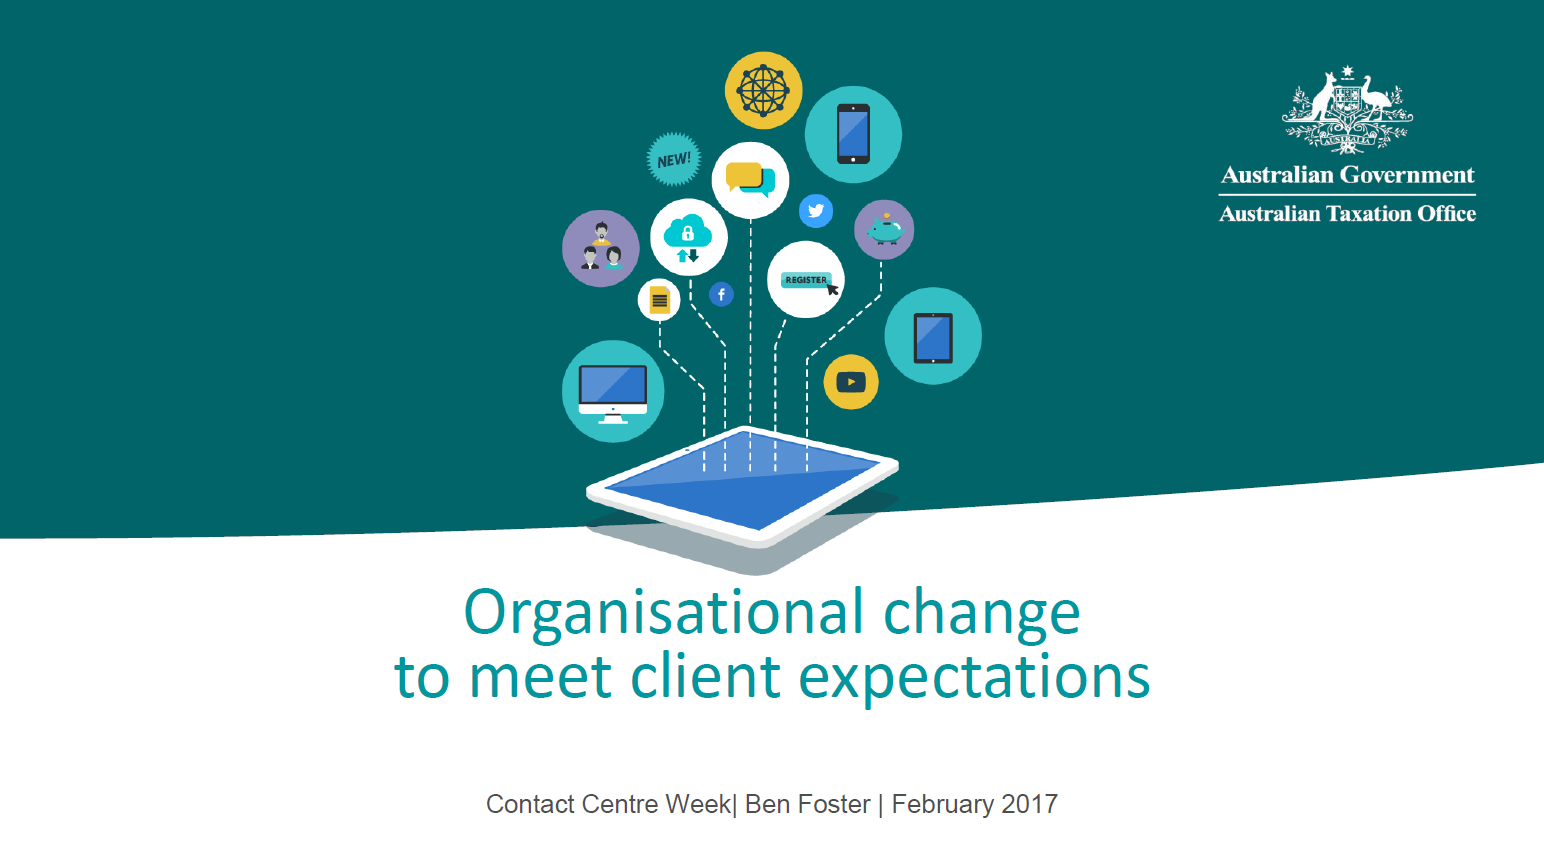 Organisational change to meet client expectations